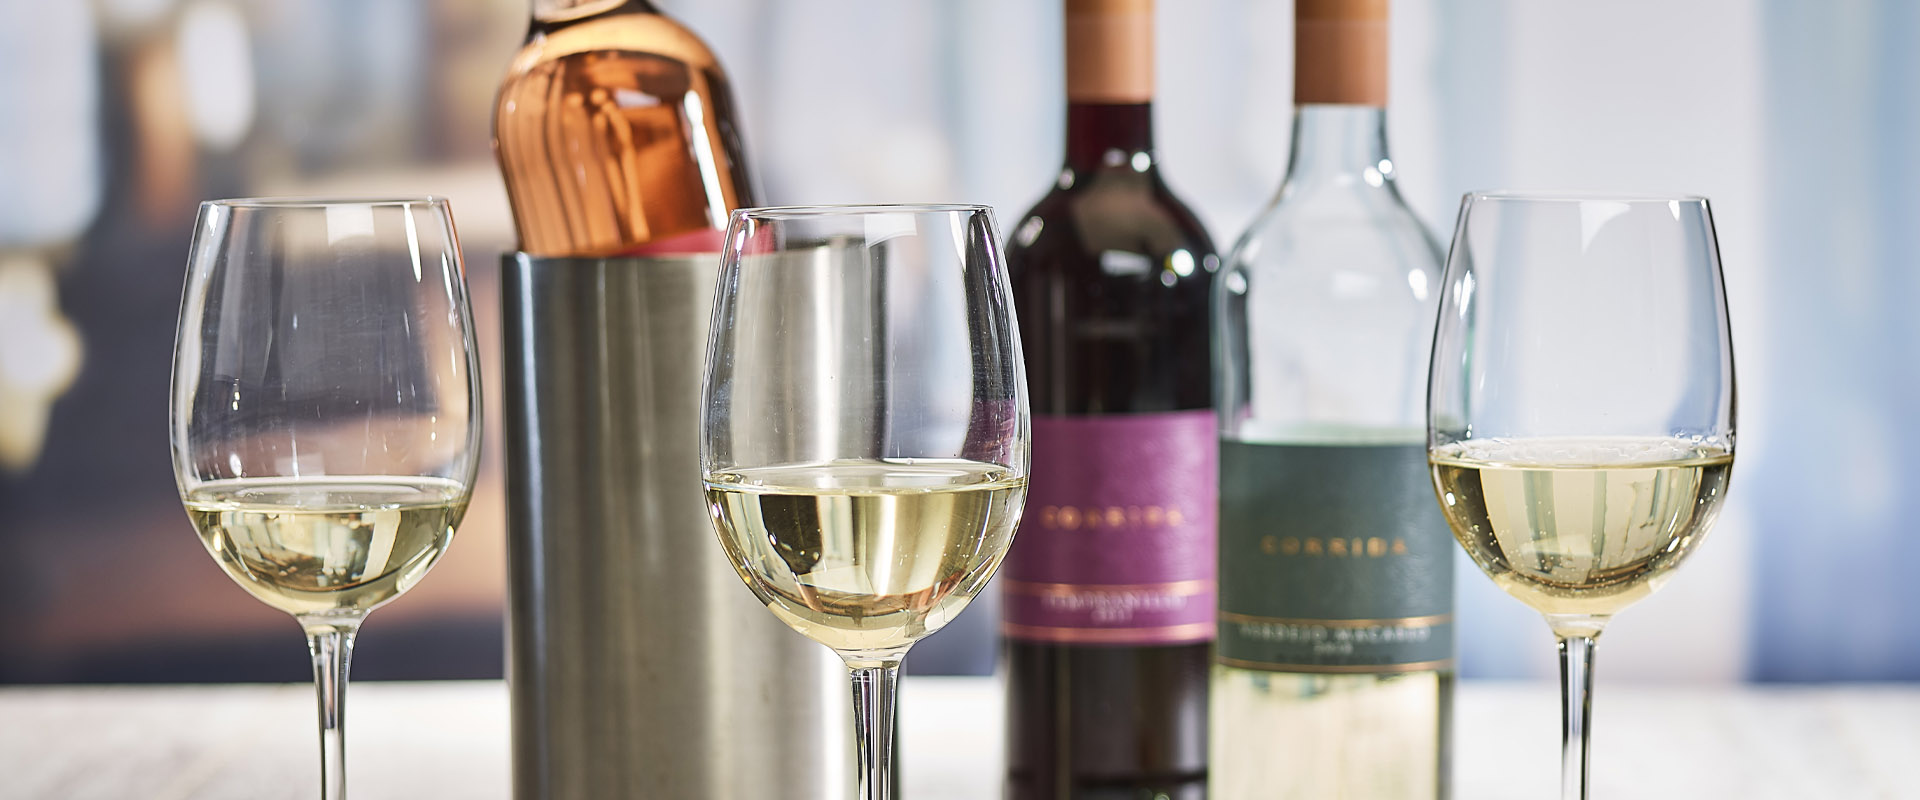 Pre-Pay for Wine this Christmas at The Cider Press